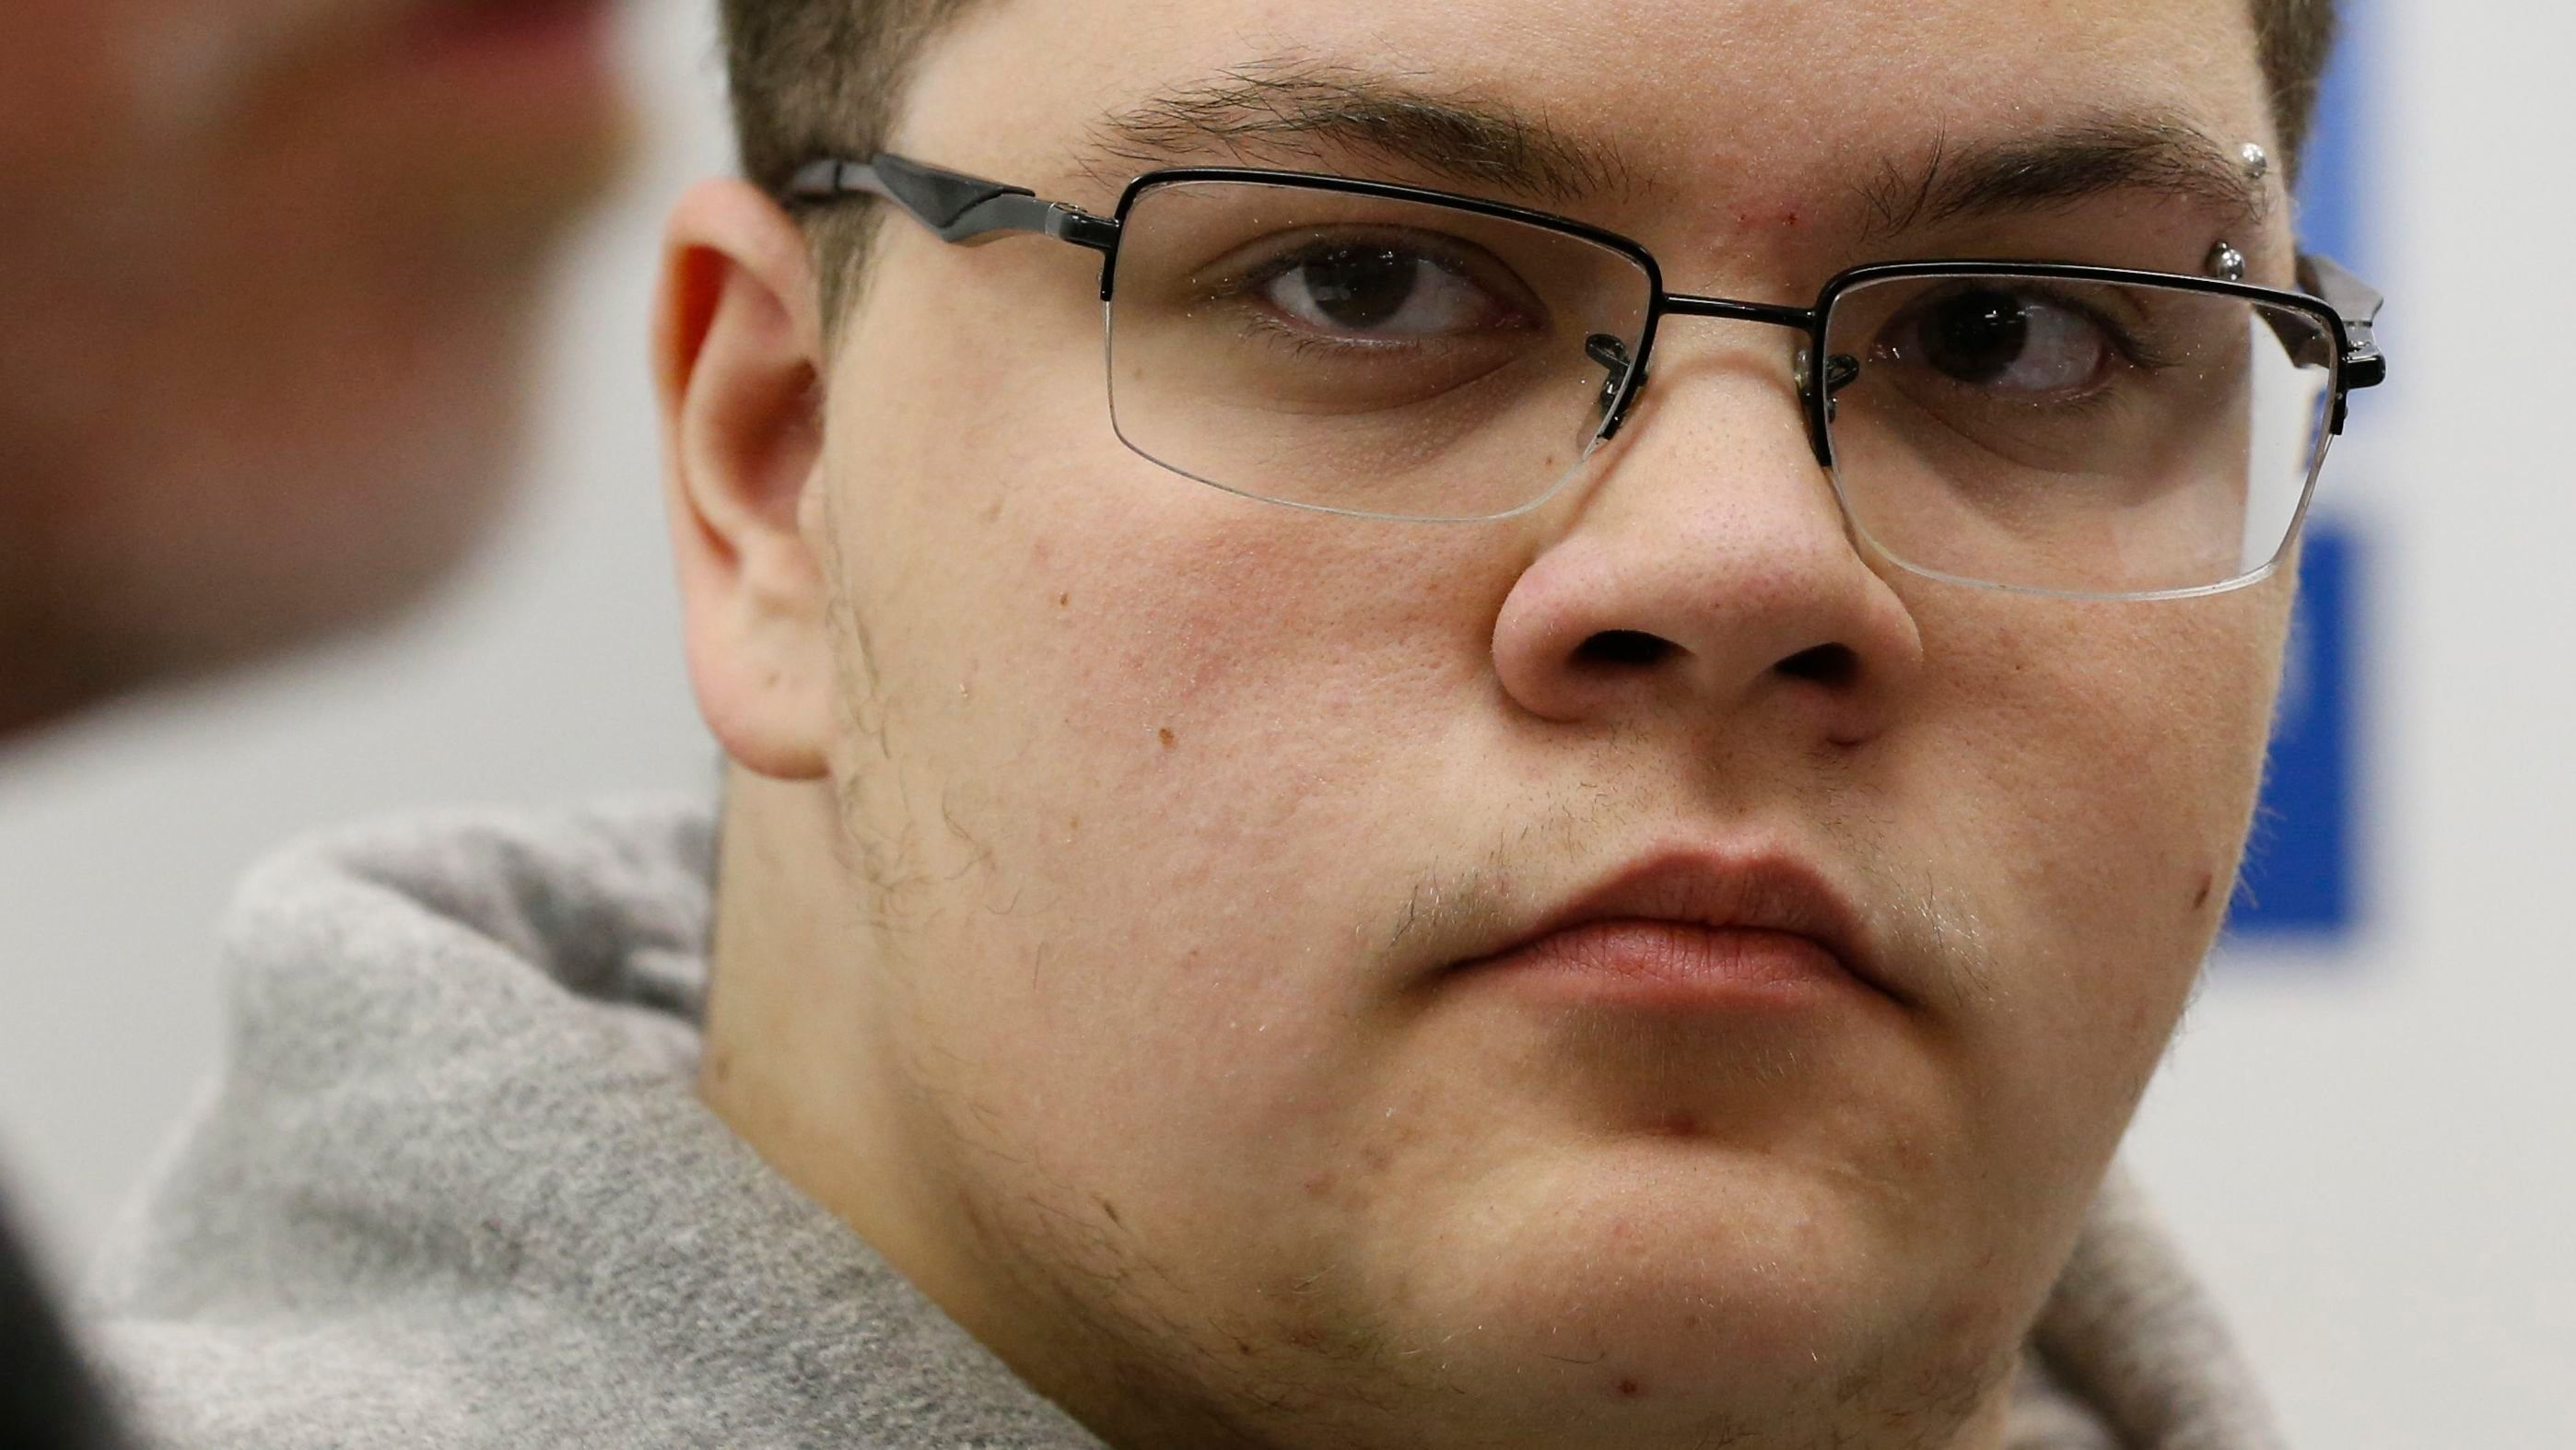 Gloucester County High School senior Gavin Grimm, a transgender student, during a news conference in Richmond, Va., in 2017. (/Steve Helber/AP)